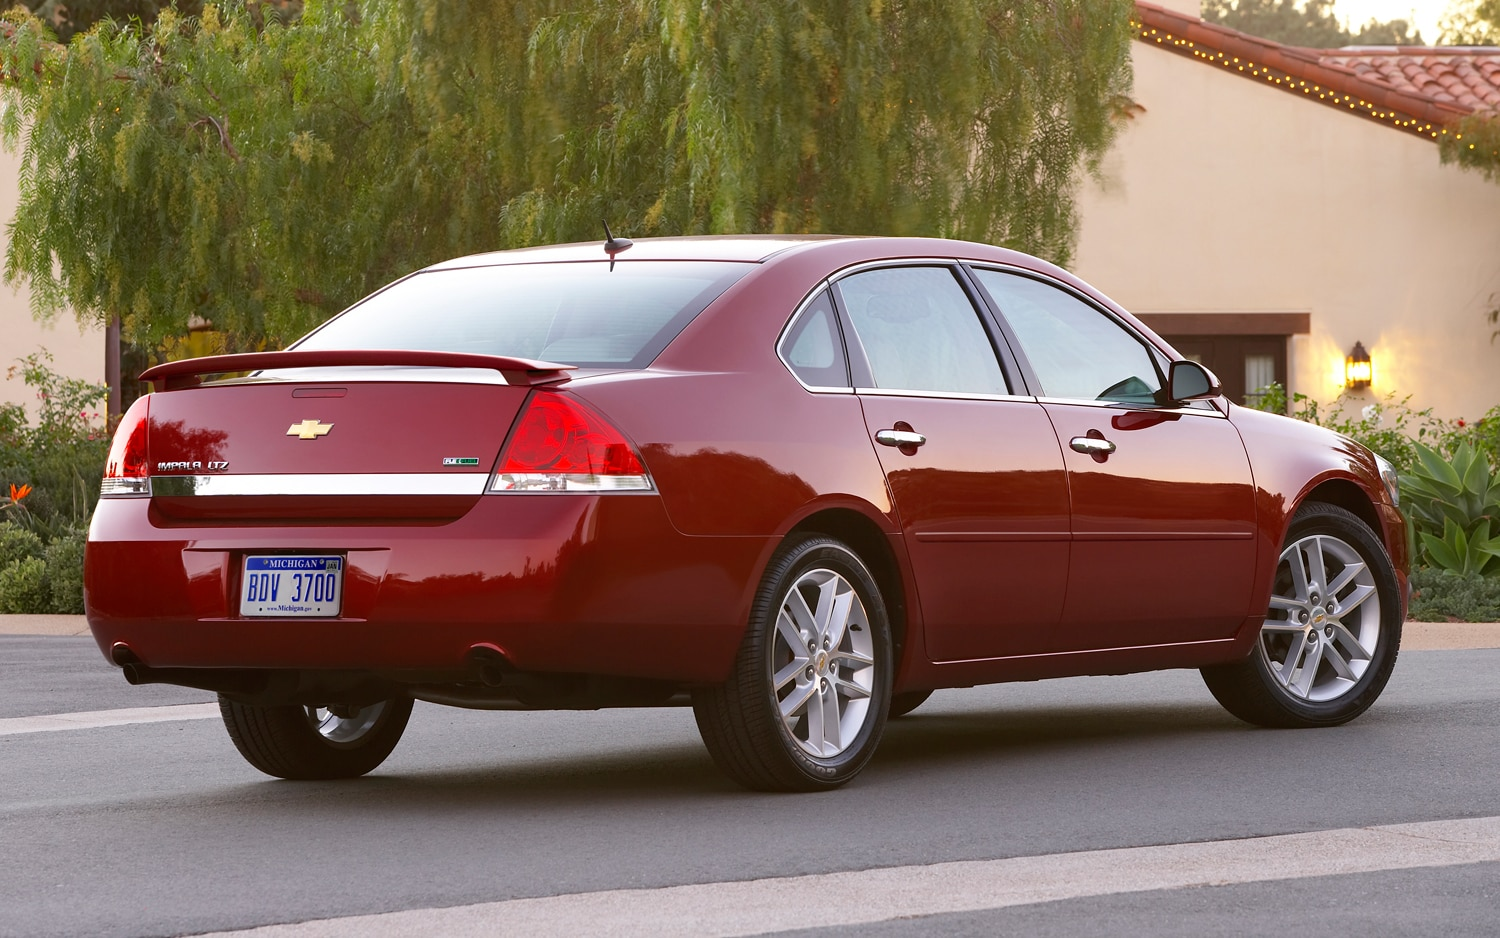 Impala 99 chevy impala : Recall Central: Audi R8 Spyder and Chevrolet Impala Could Catch ...